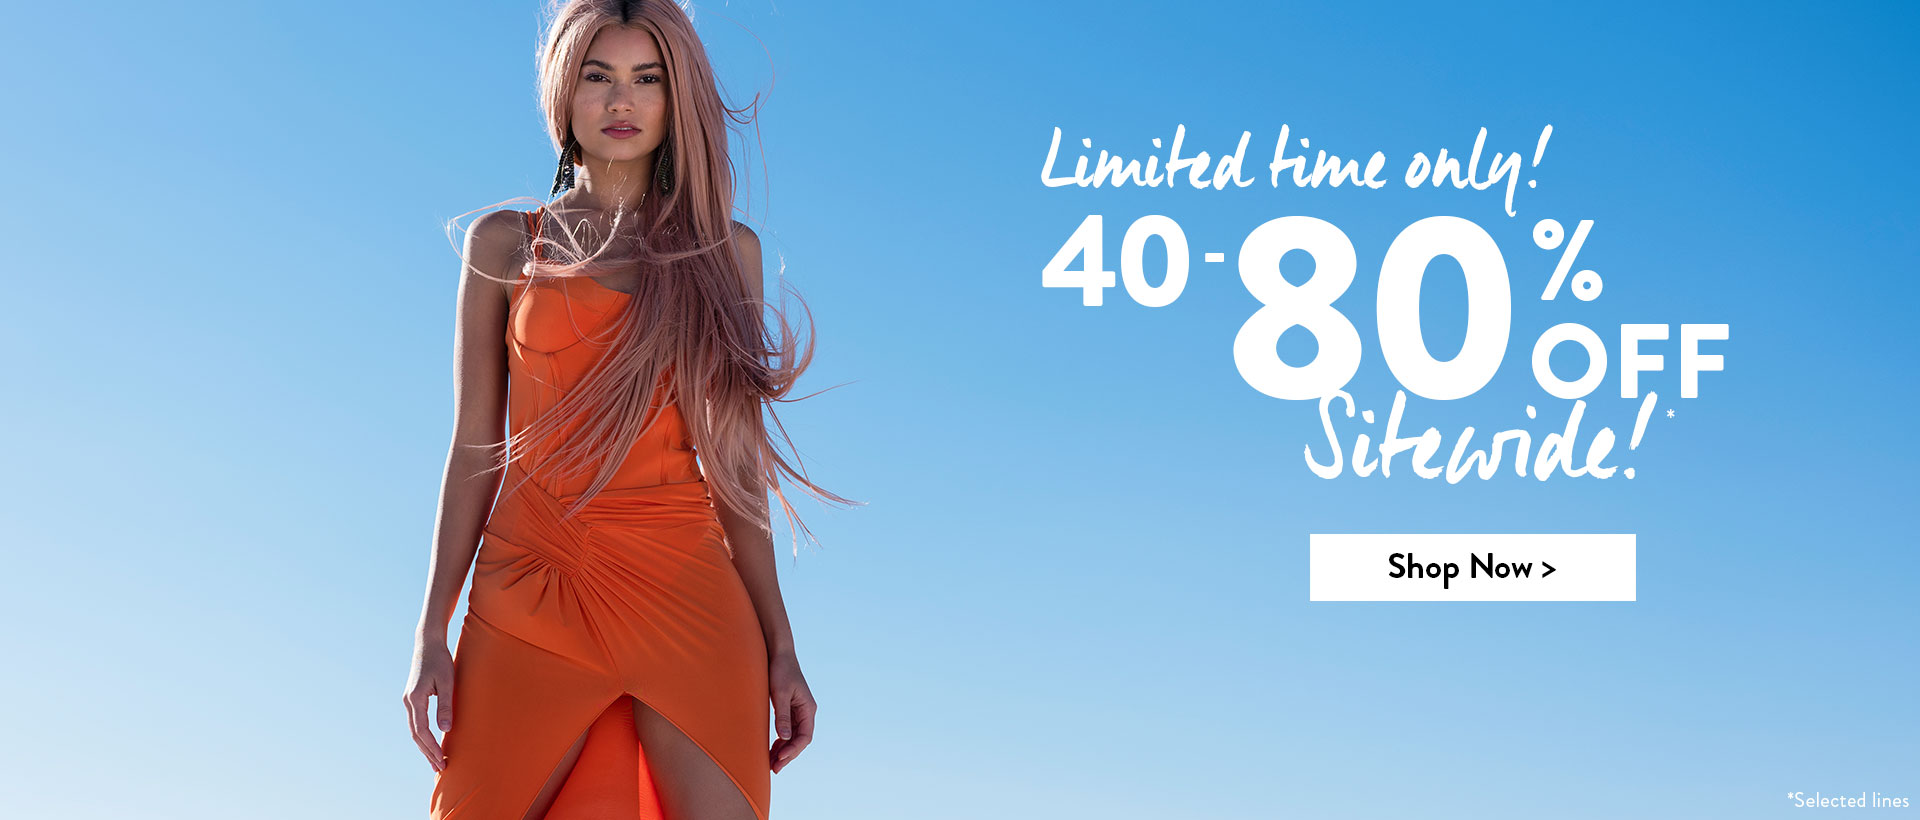 Clothes Womens Mens Clothing Fashion Online Shopping Boohoo - Business invoice software free trendy online clothing stores